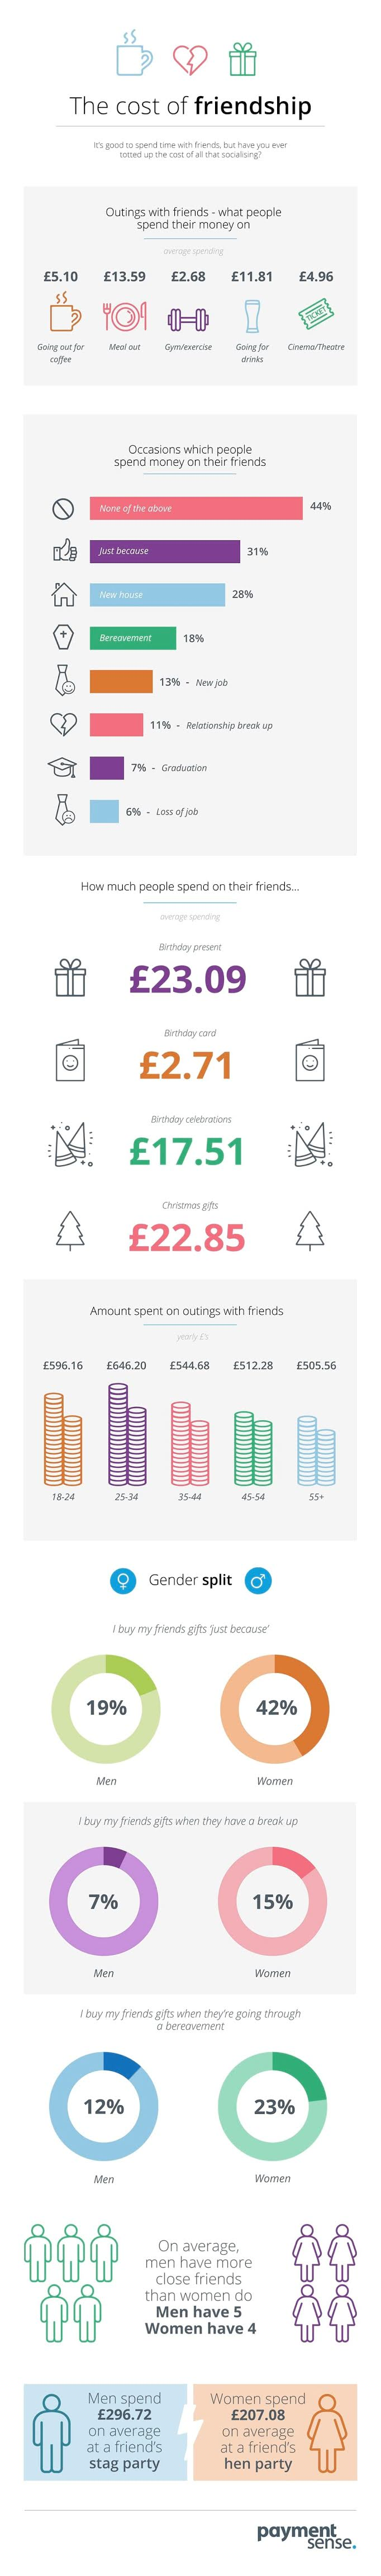 The True Cost Of  Friendship #infographic #Friendship #True Cost #Cost Of  Friendship